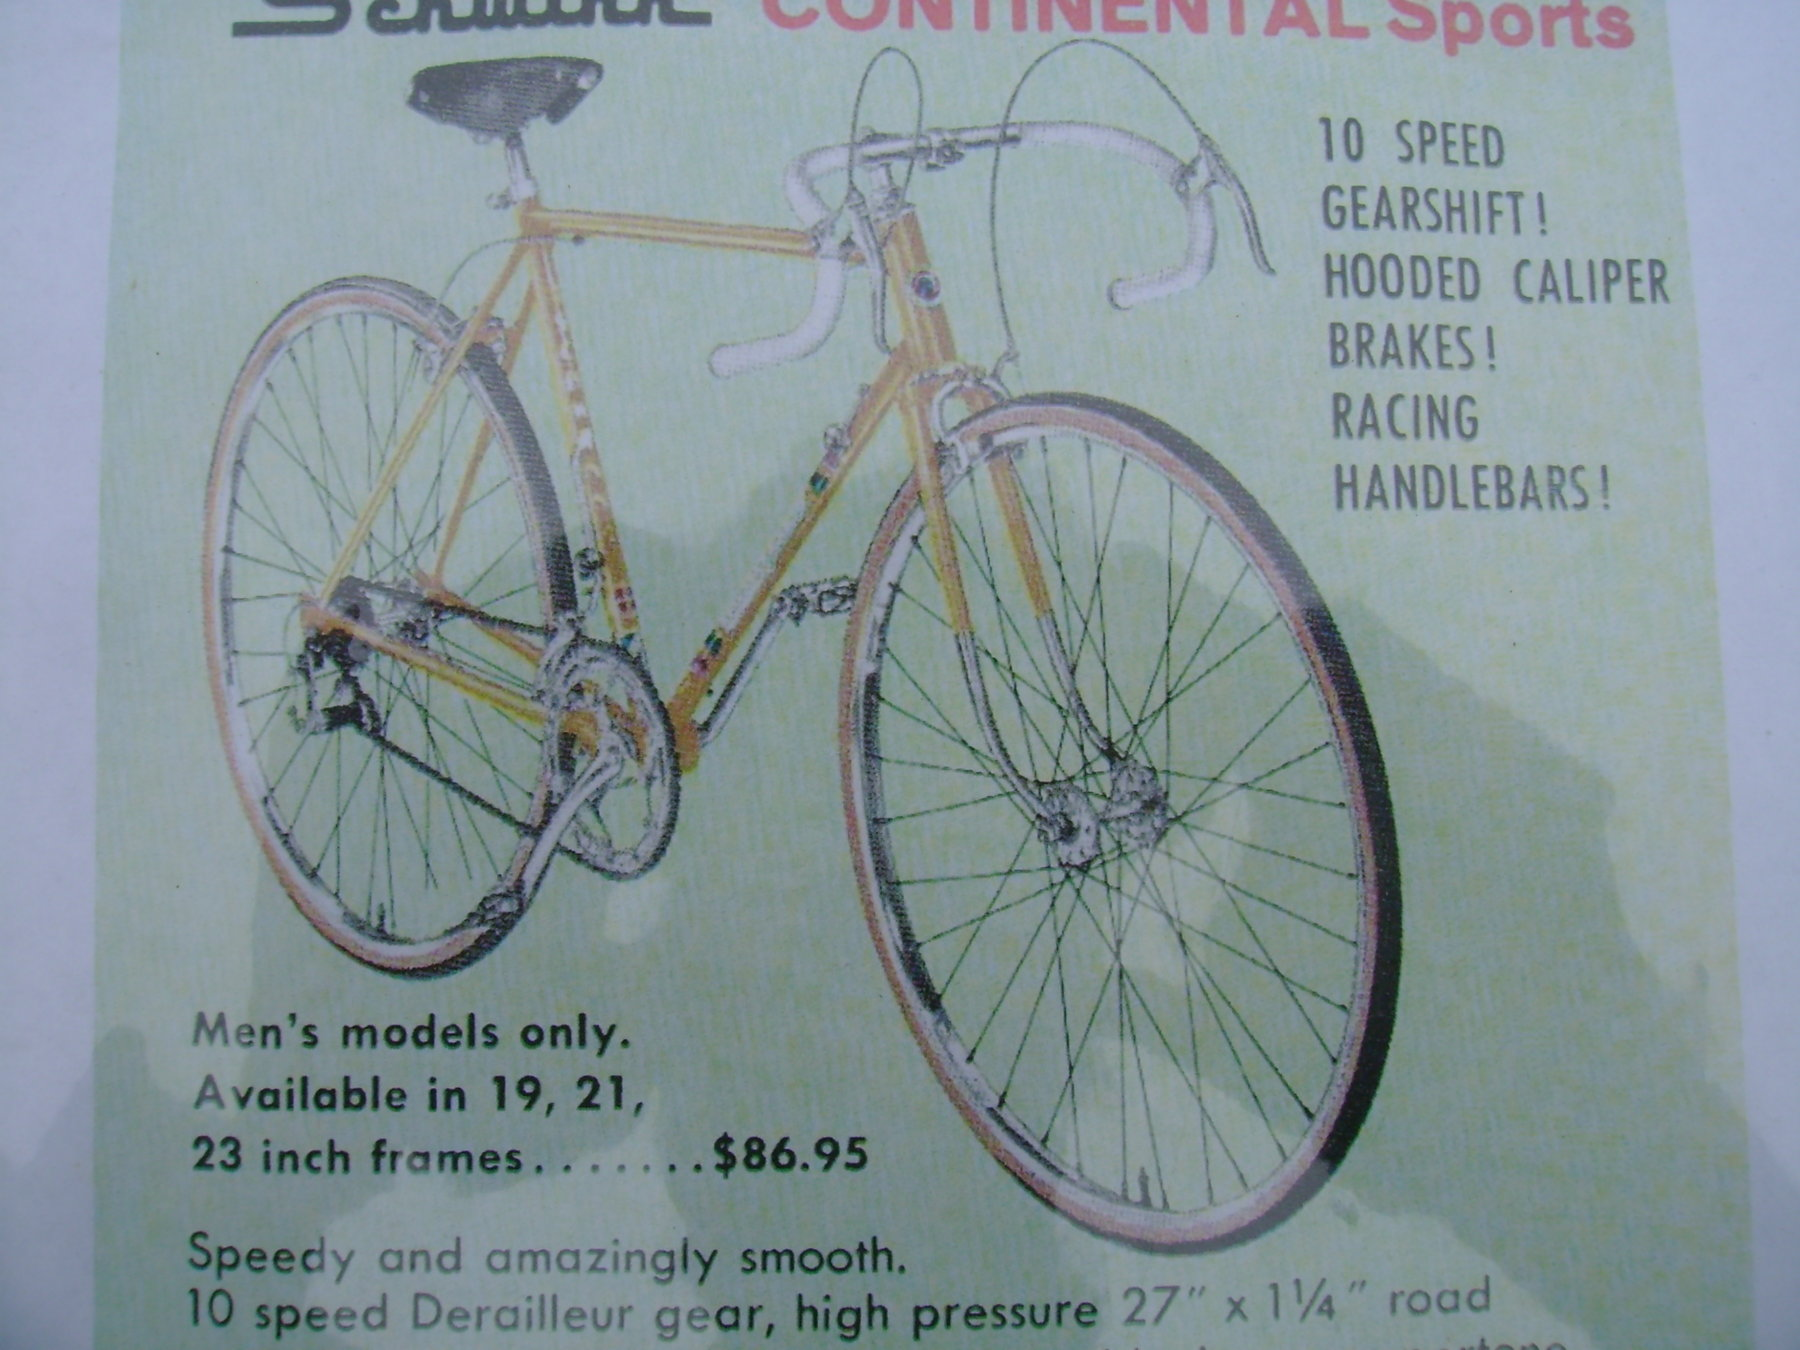 721827b2dd6 1960 Schwinn Continental Sport 10 speed road bike 23